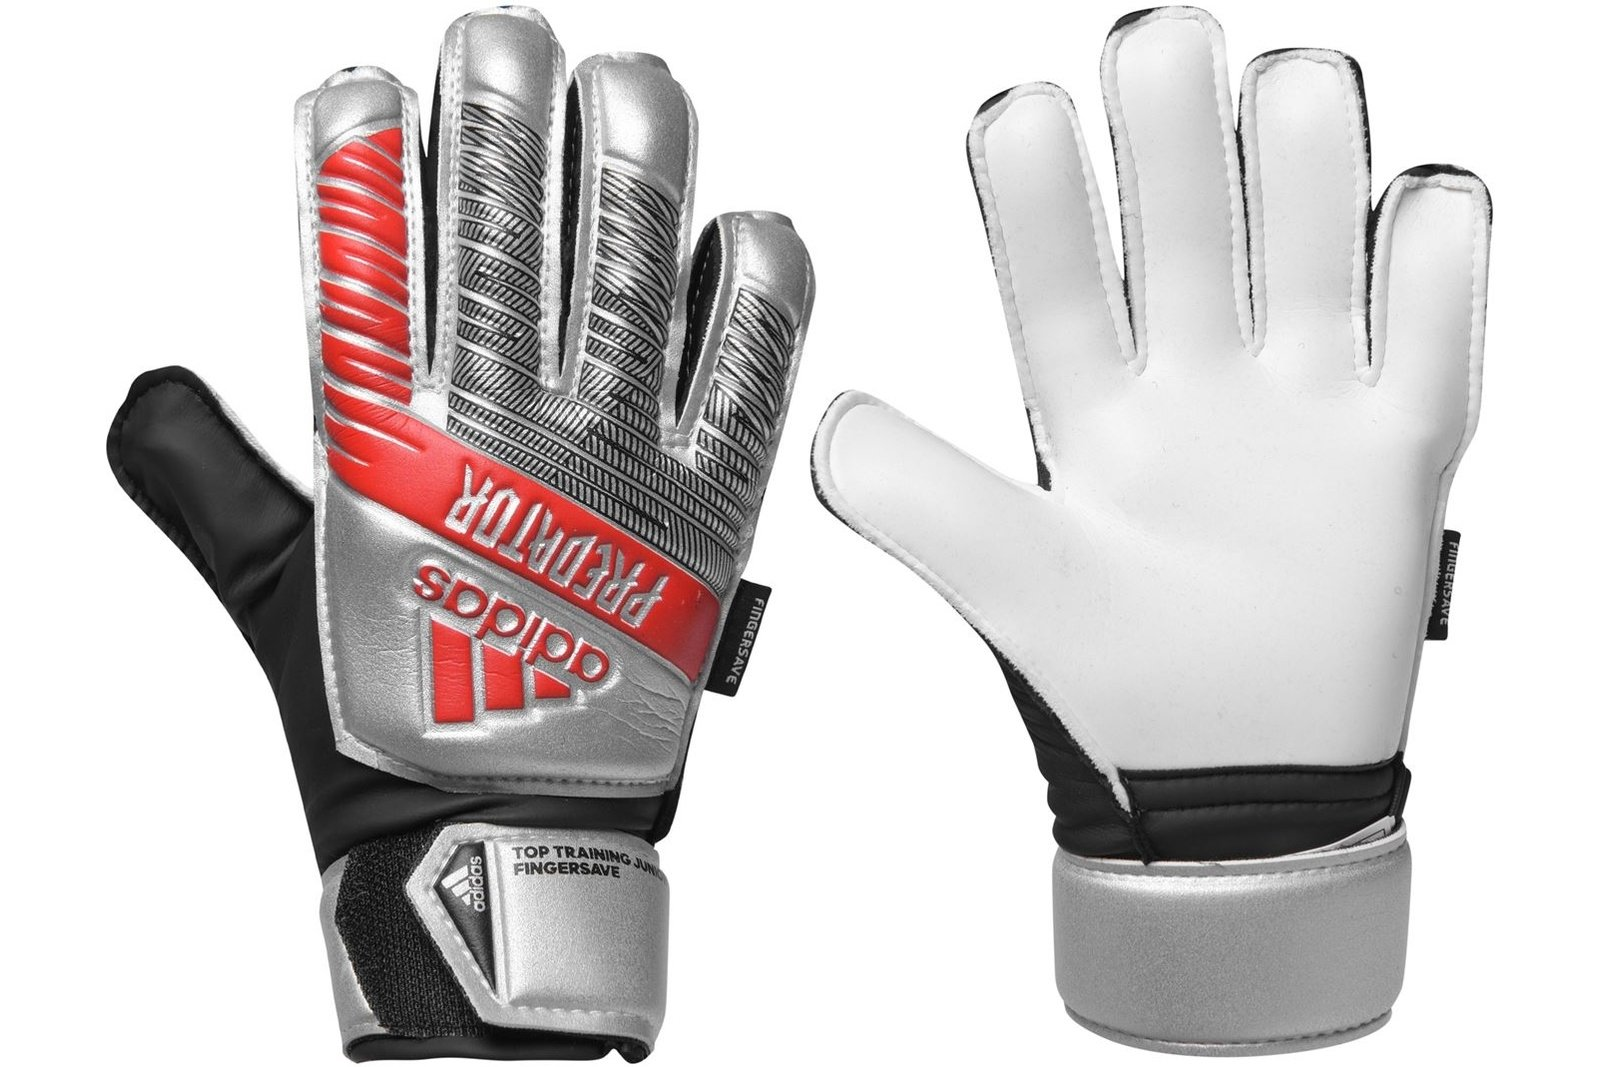 Predator Top Training Fingersave Goalkeeper Gloves Juniors